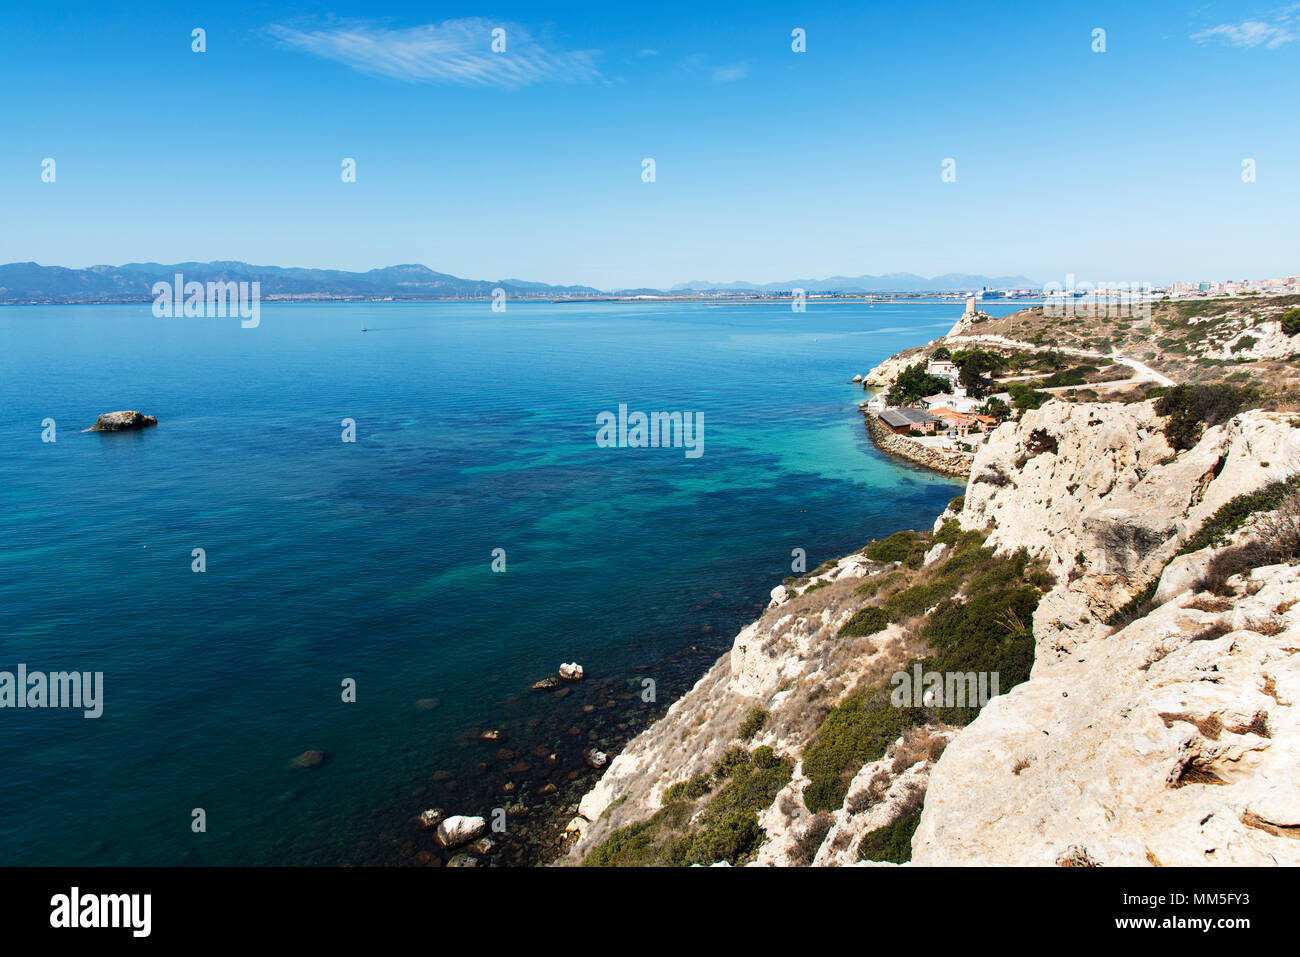 a view of the coast of Sant Elia in Cagliari, Sardinia, highlighting the Prezzemolo tower on the right and the port of Cagliari in the background - Stock Image